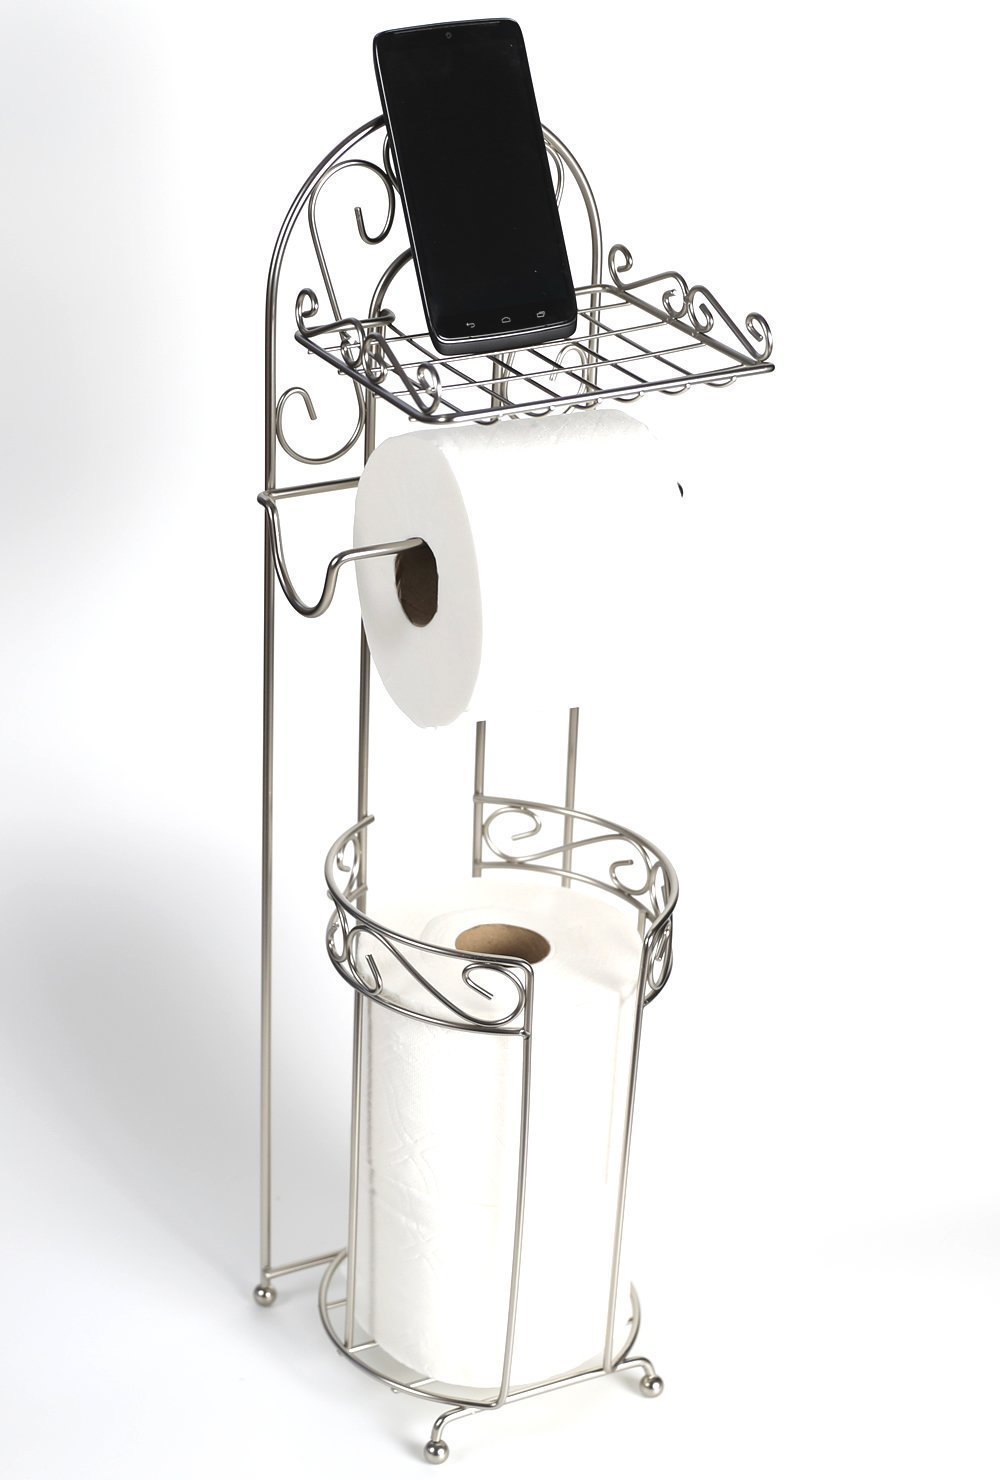 McLee Creations FSTP-SN Free Standing Toilet Paper Holder with Phone Shelf for Bathroom